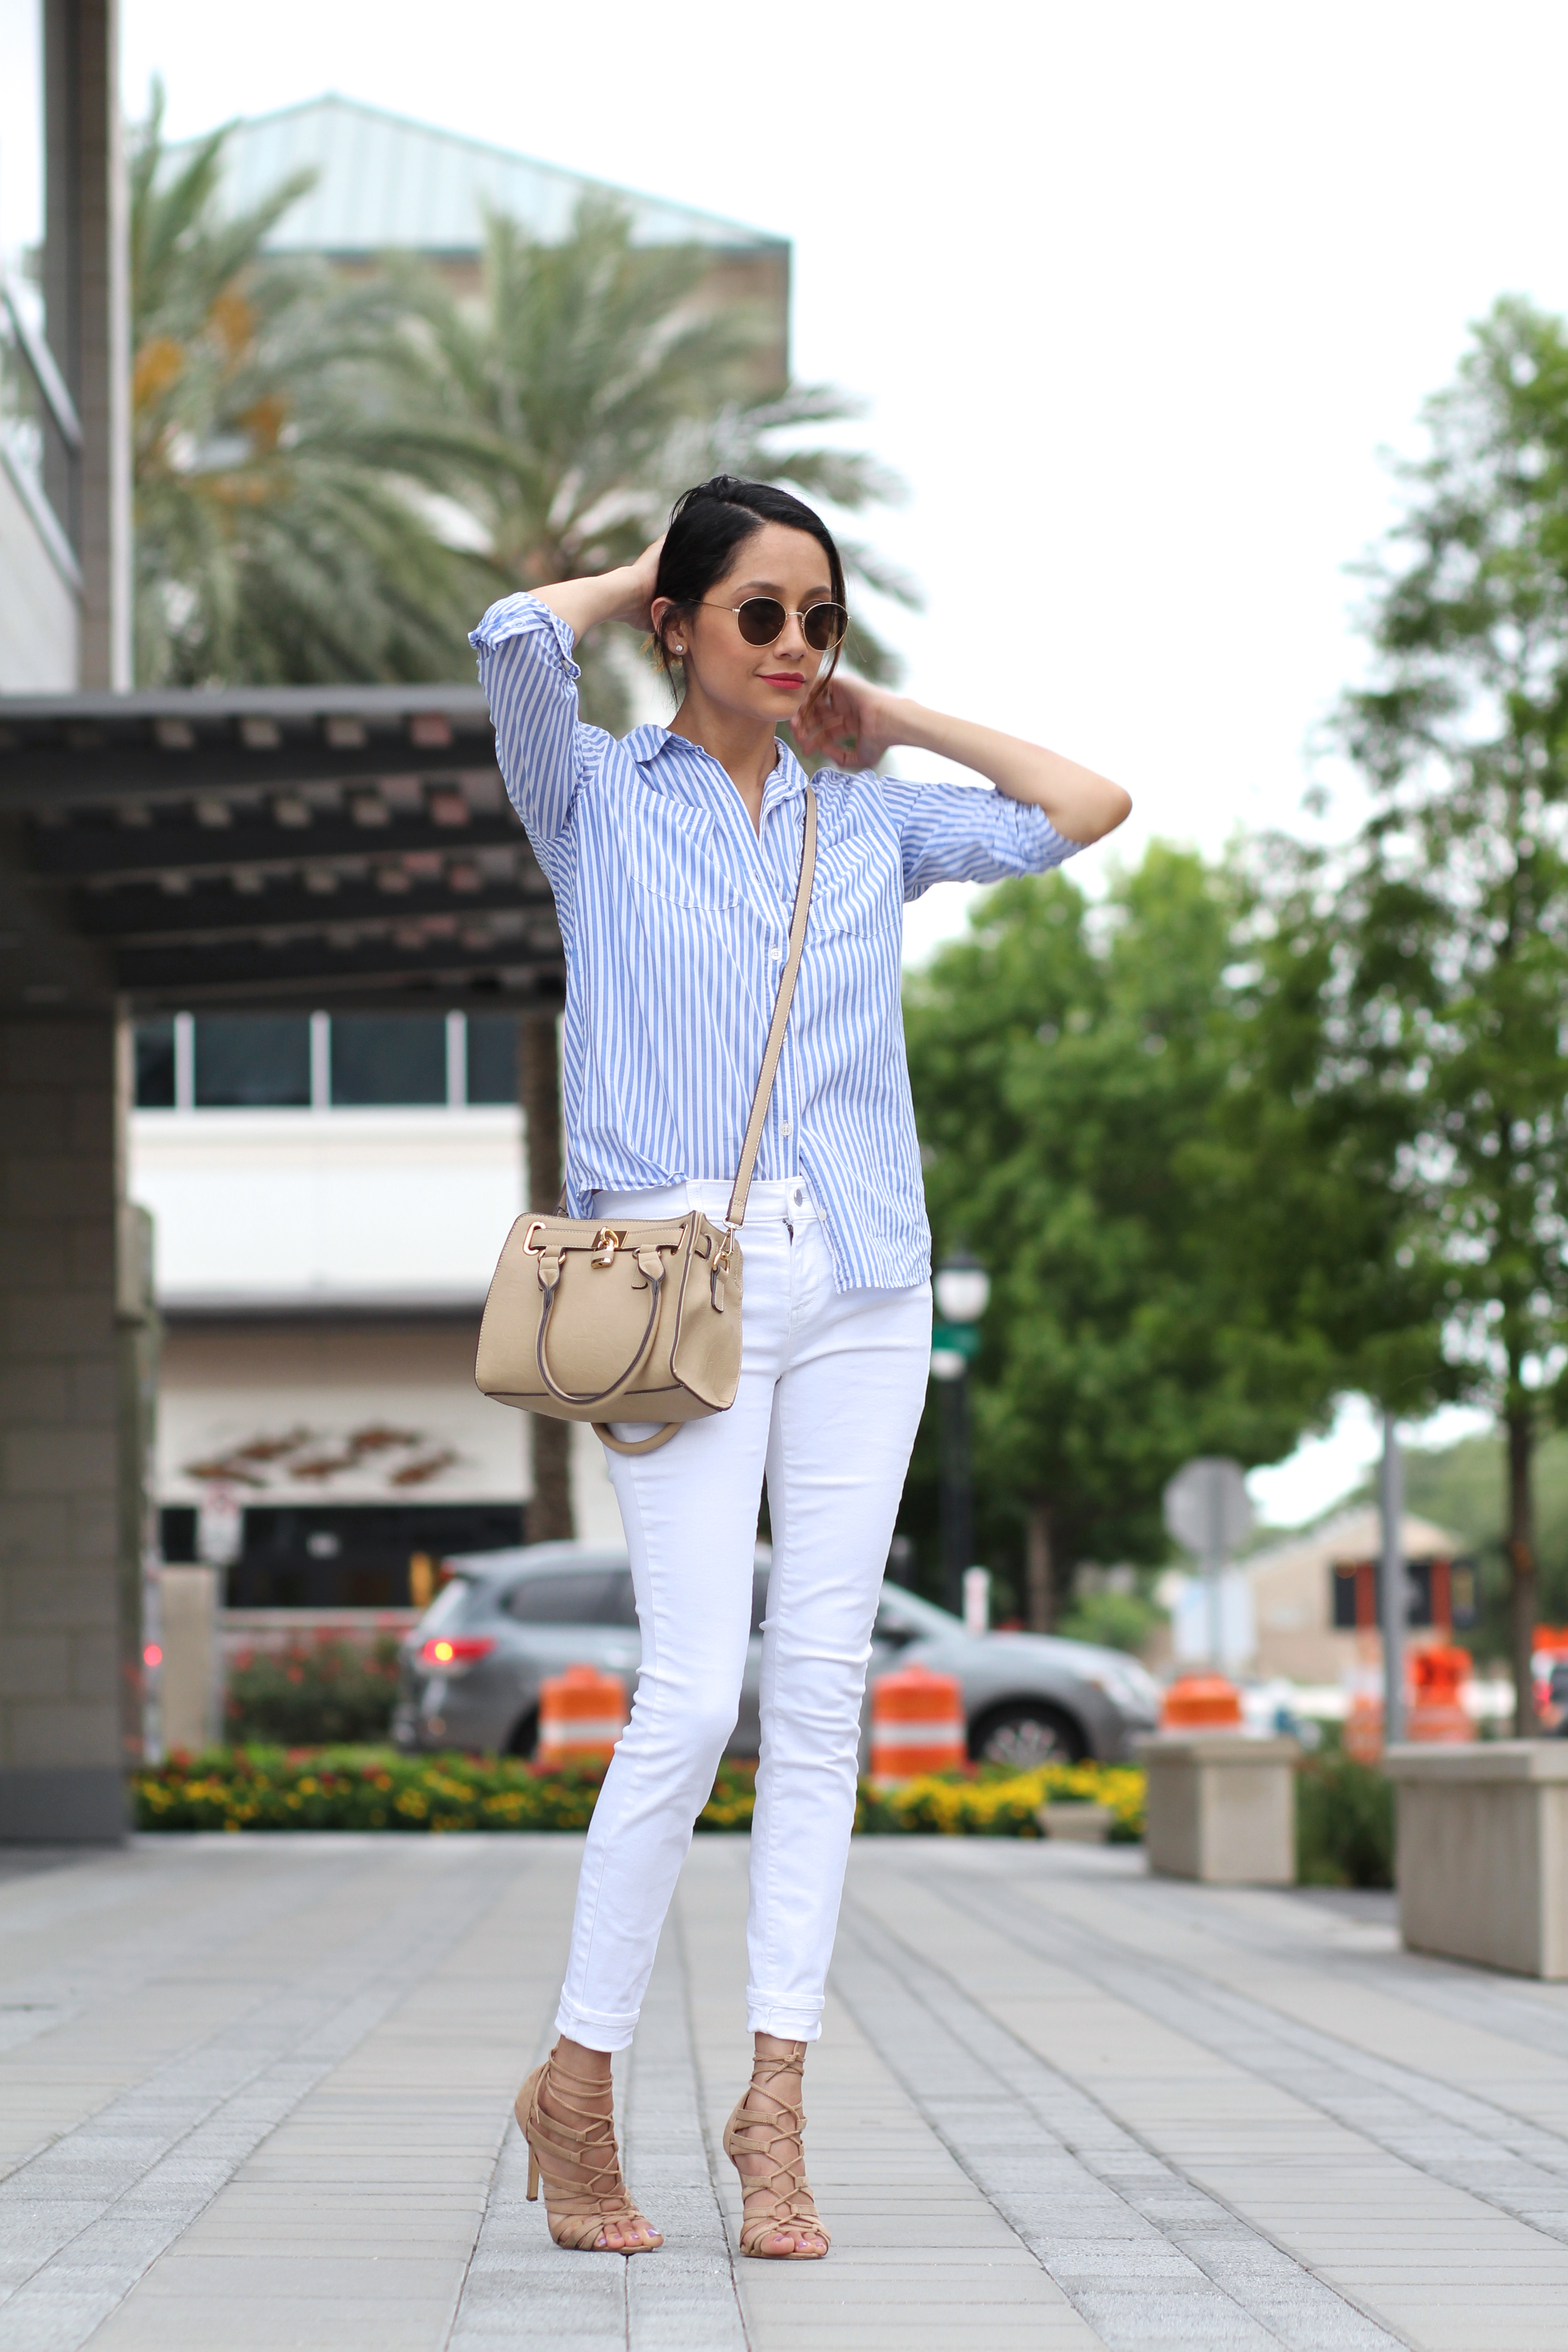 How To Wear Vertical Stripes In Summer | White Denim | Summer Look